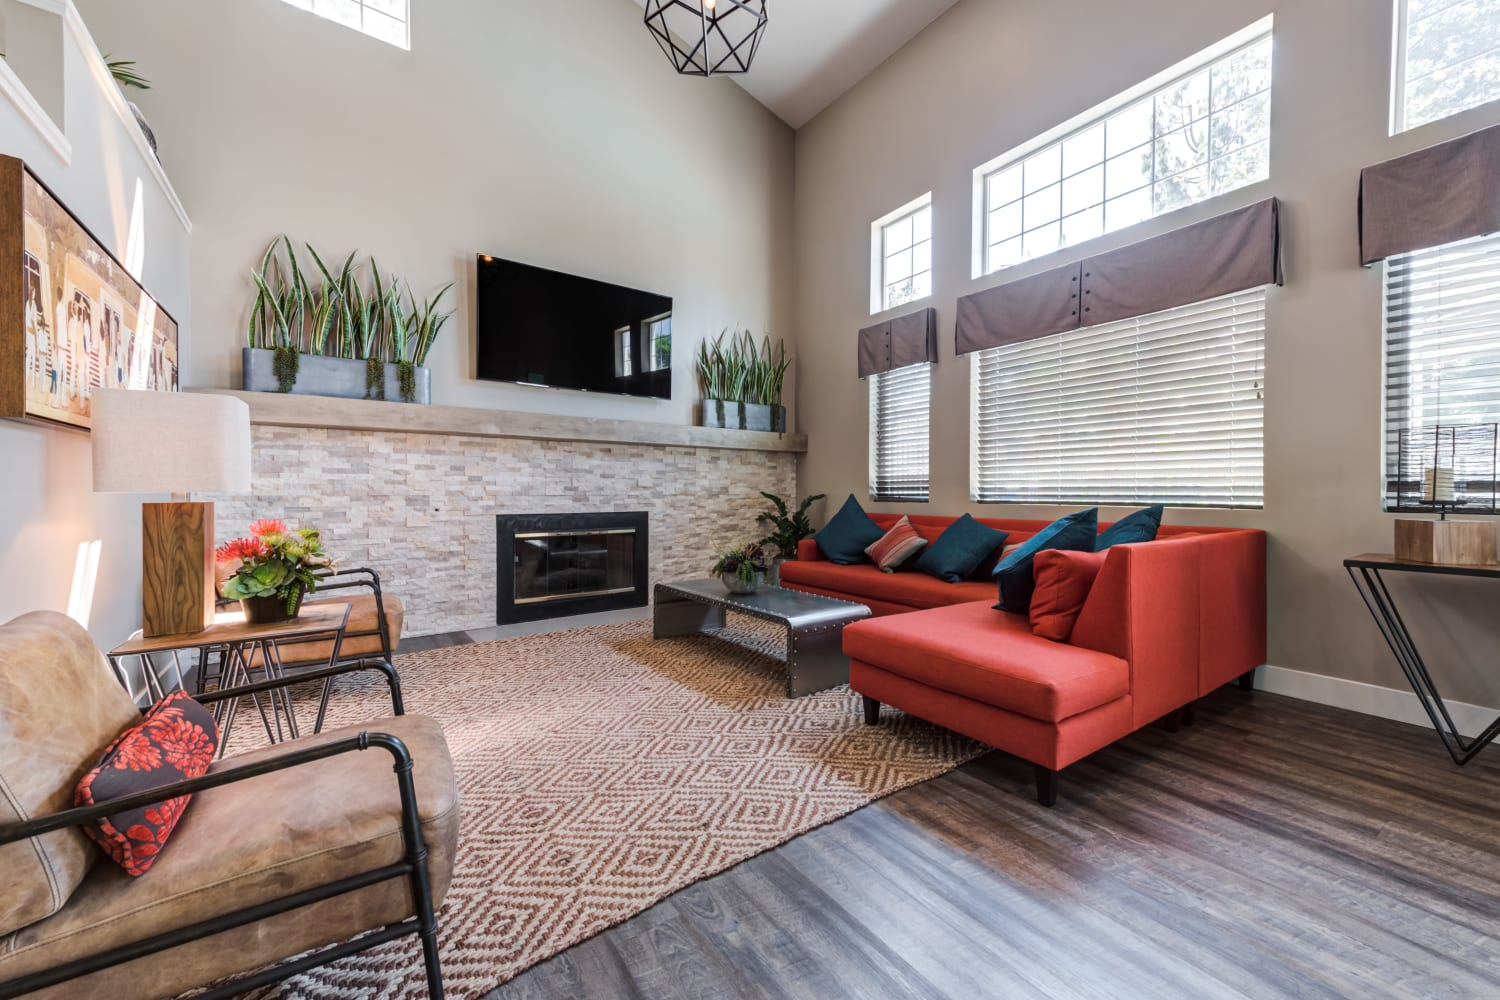 Well appointed interior decor is a feature of the clubhouse at Sierra Heights Apartments in Rancho Cucamonga, CA